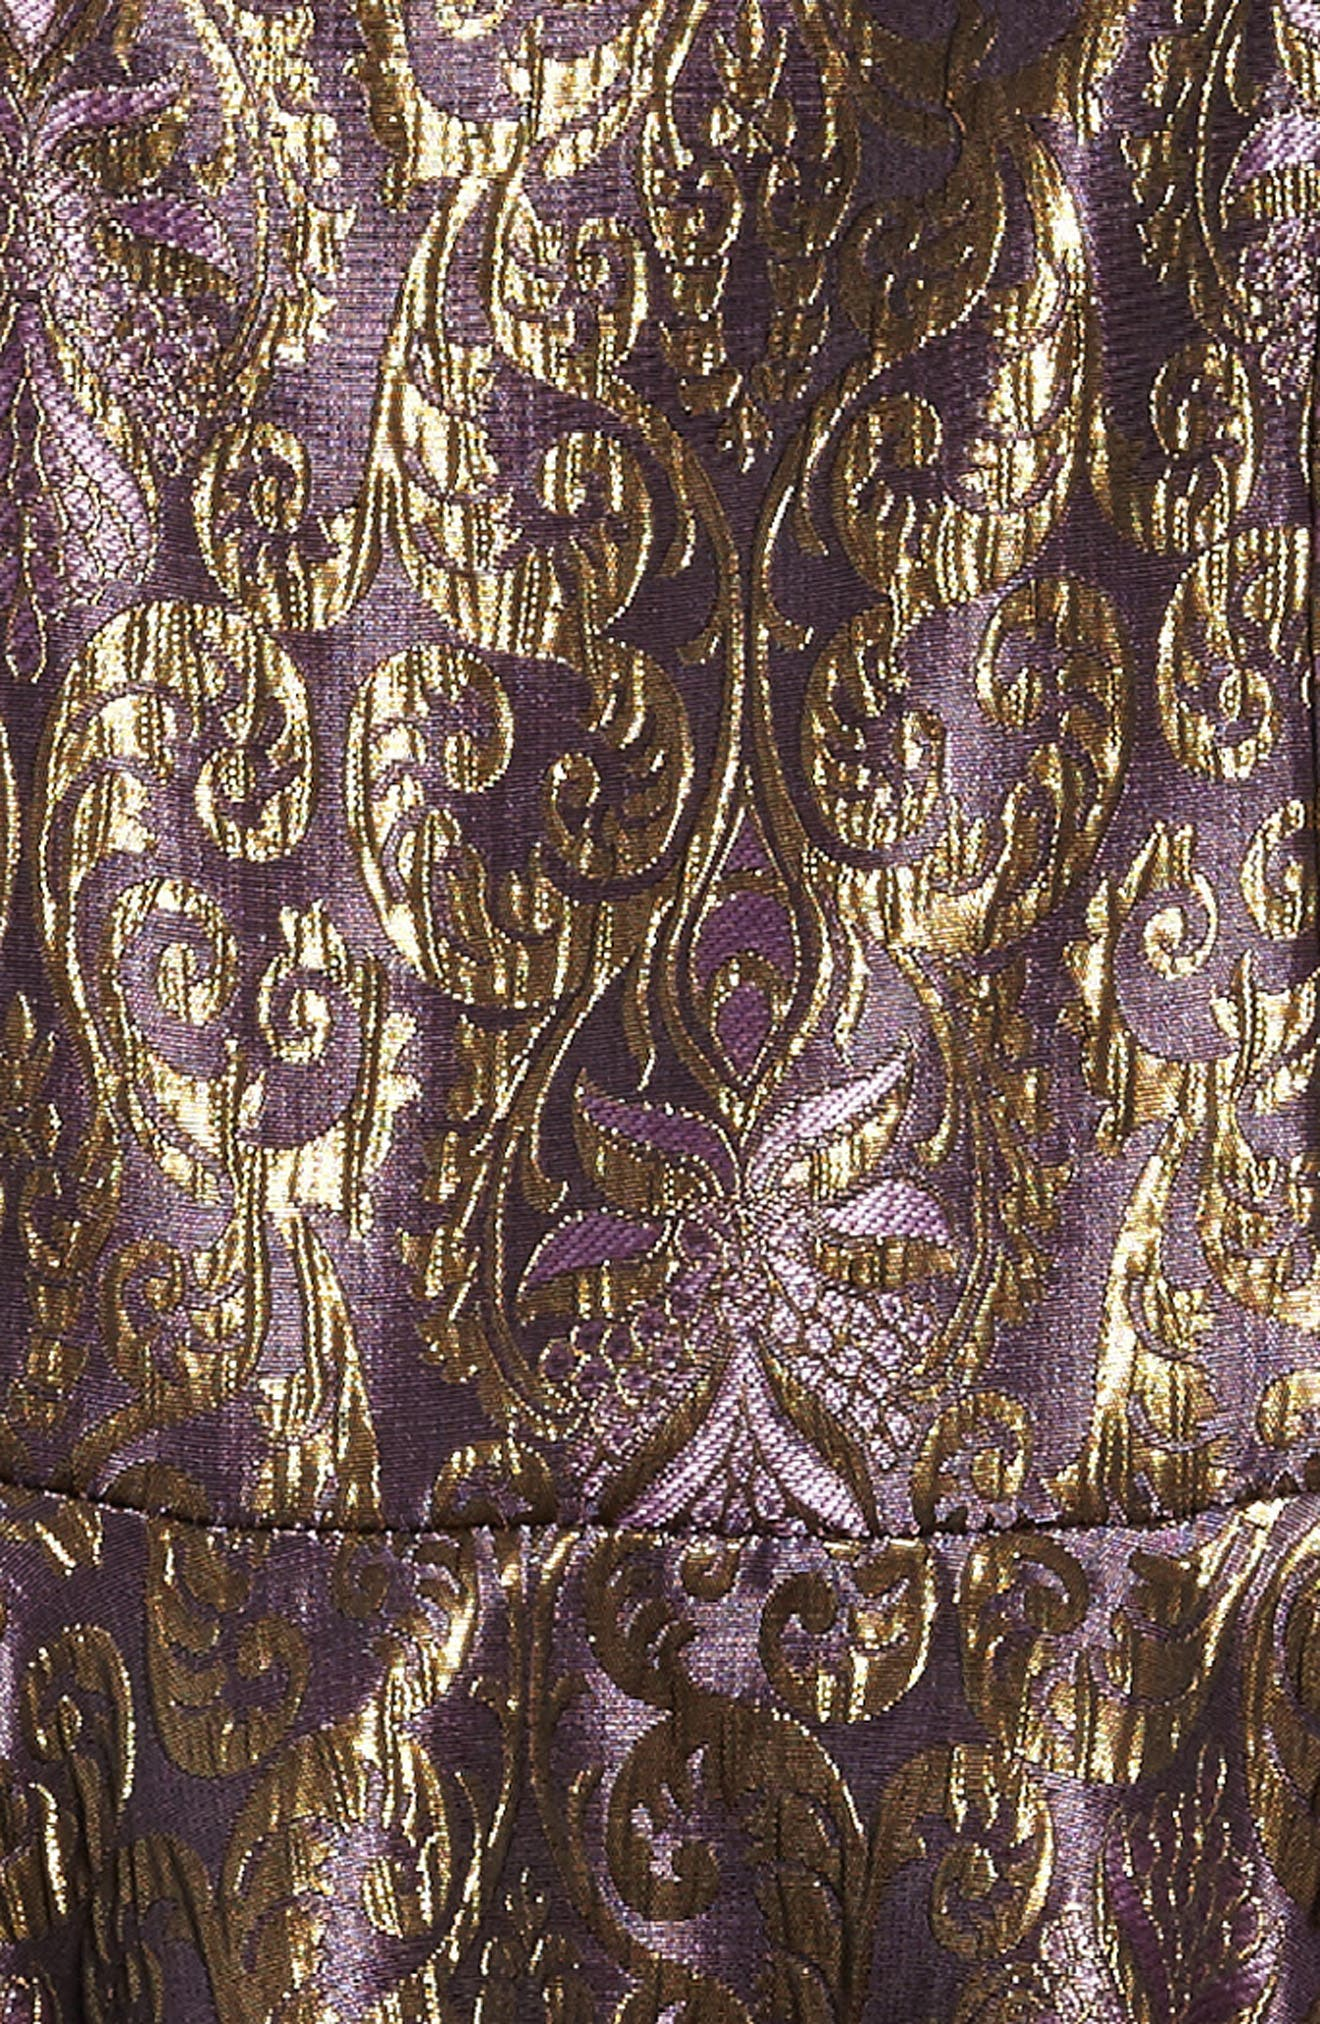 Jacquard Dress,                             Alternate thumbnail 3, color,                             710